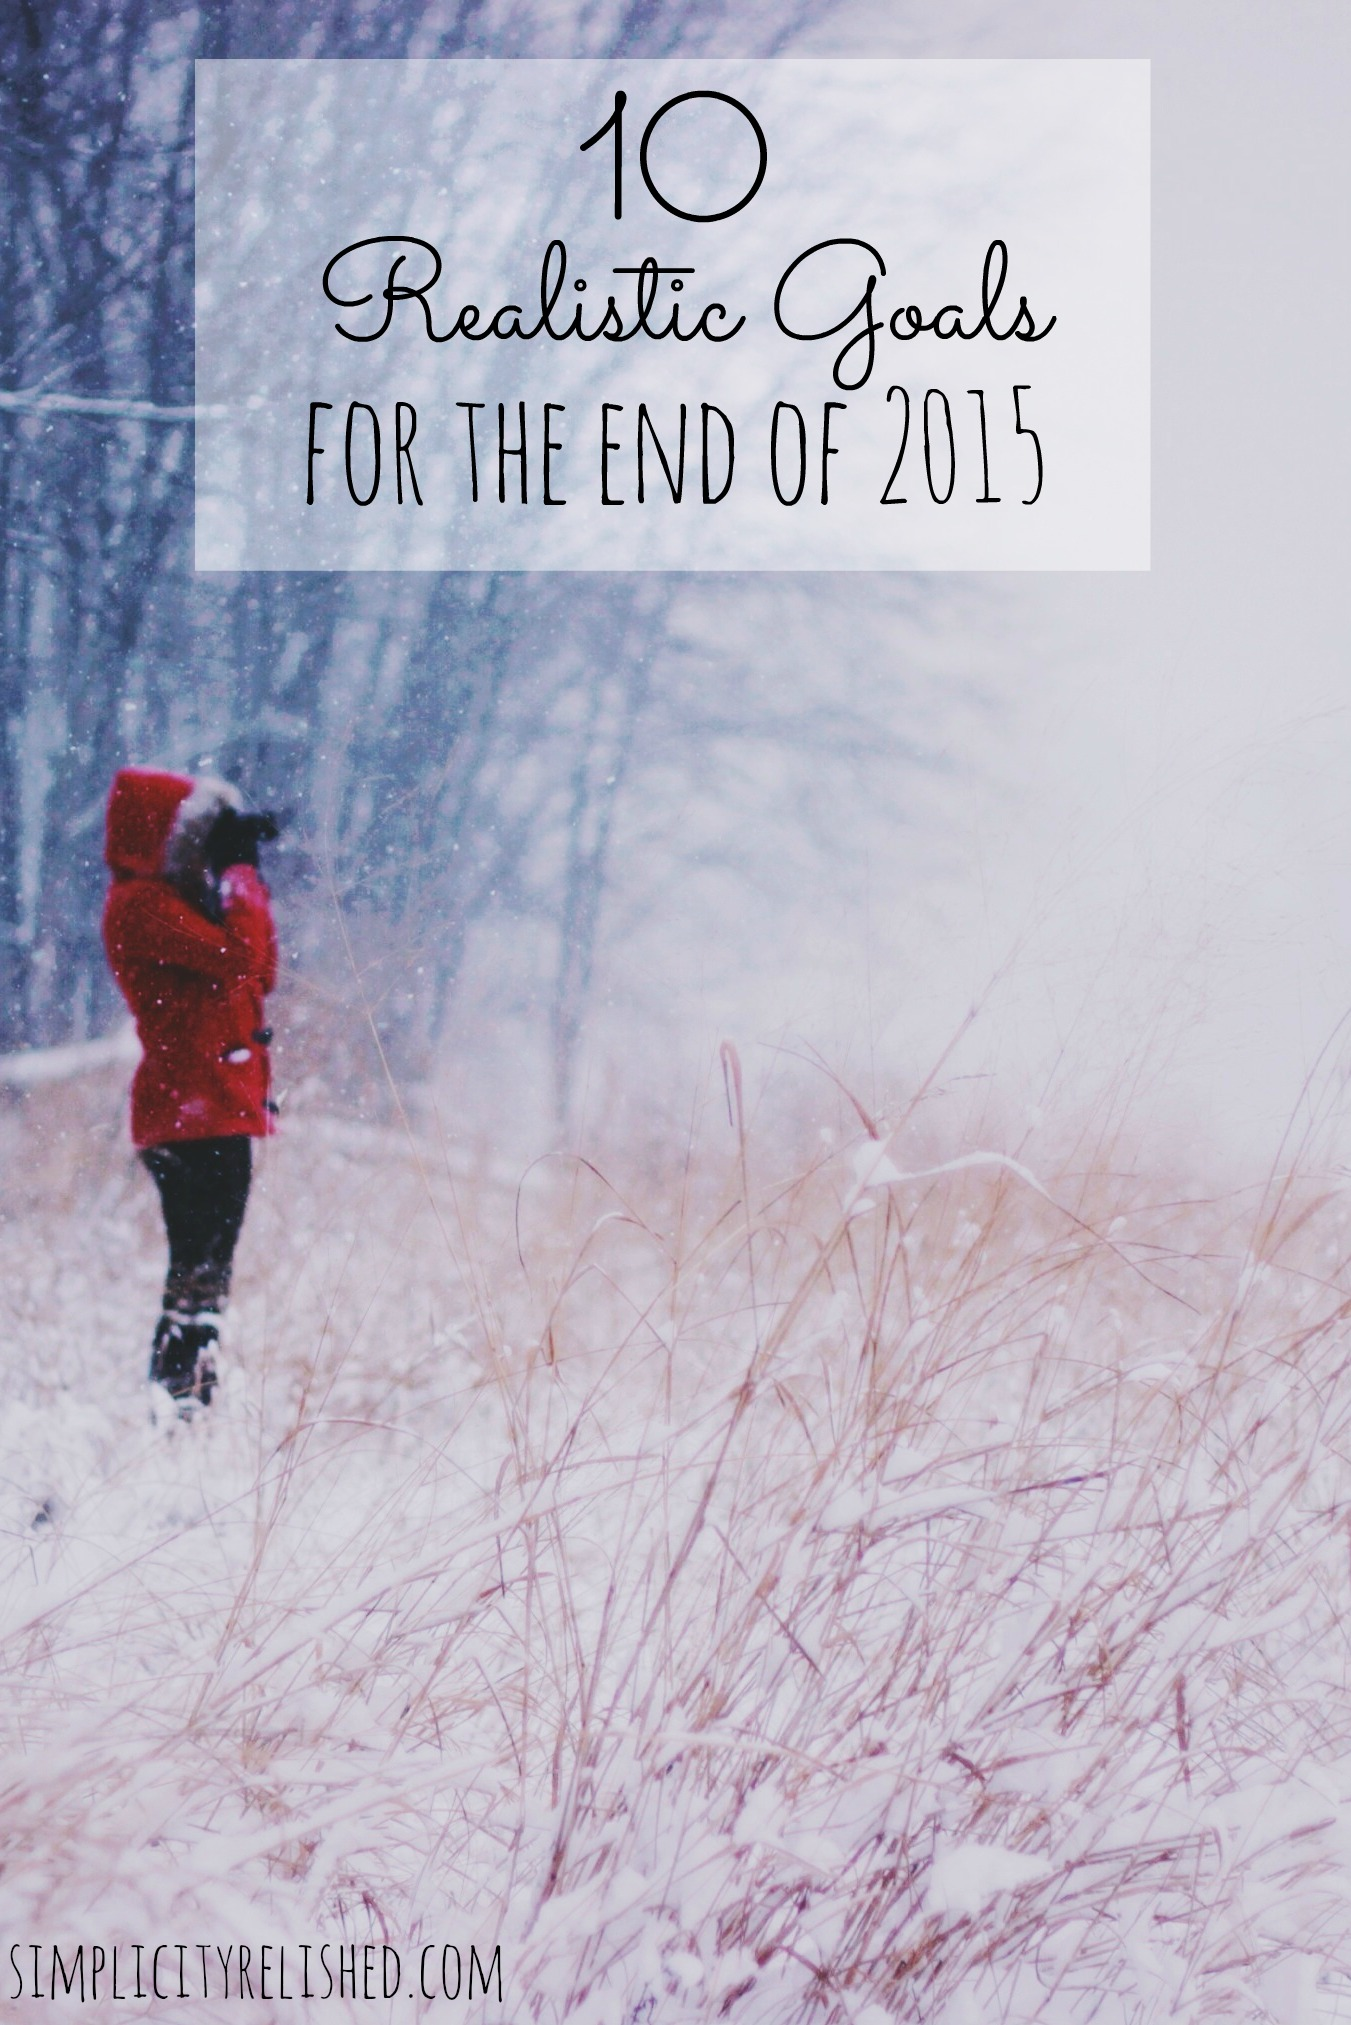 10 realistic goals for the end of 2015- ways to achieve what you wanted to this year